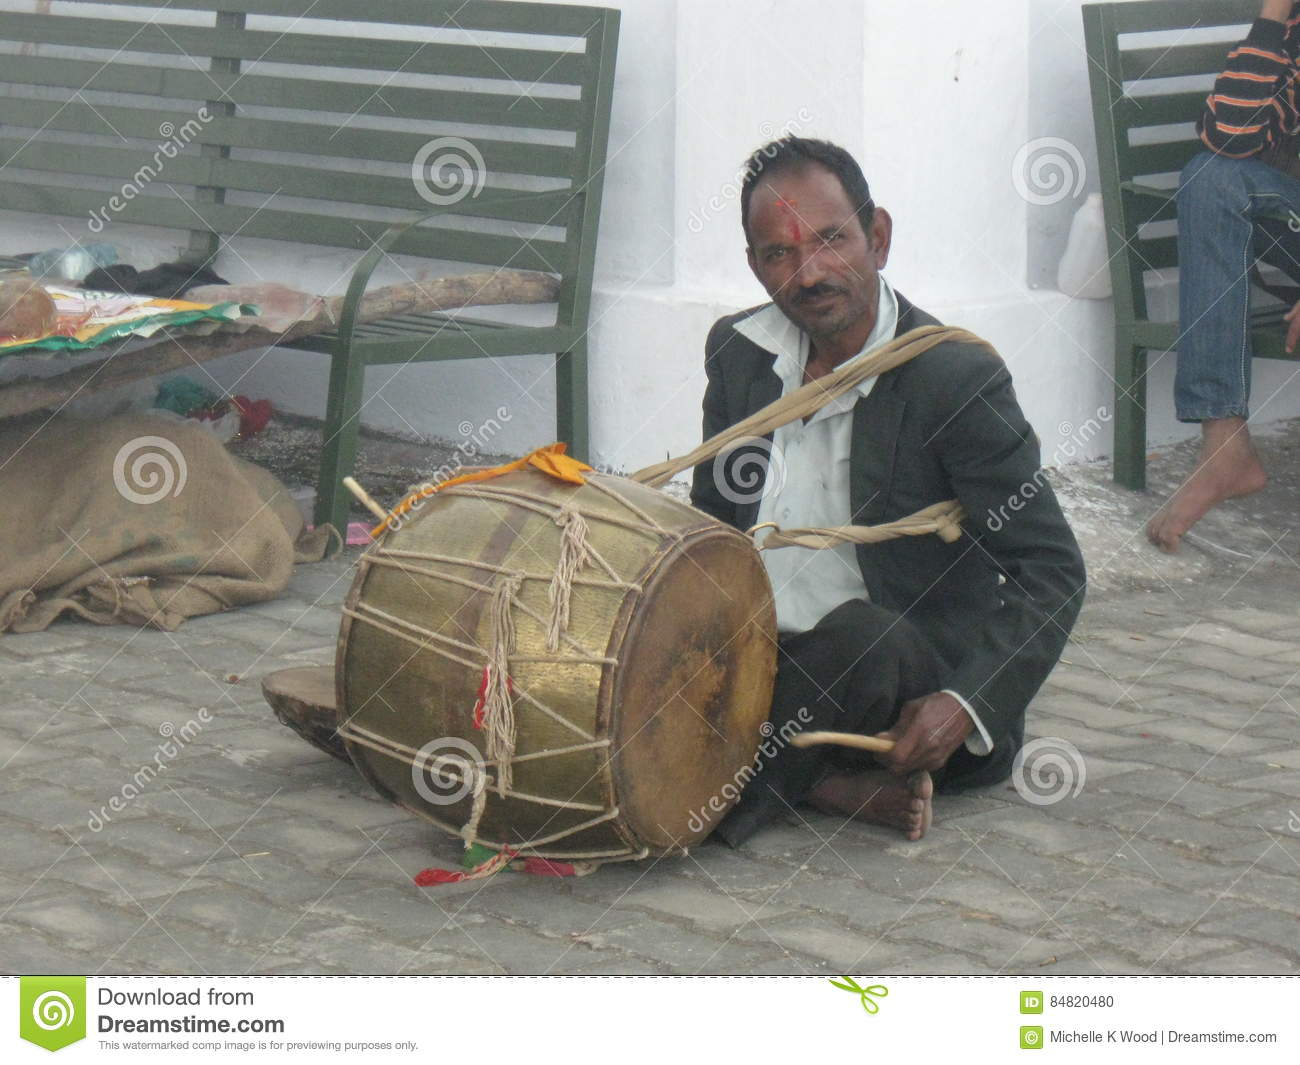 Wedding drummer at Kunjapuri Temple near Rishikesh India